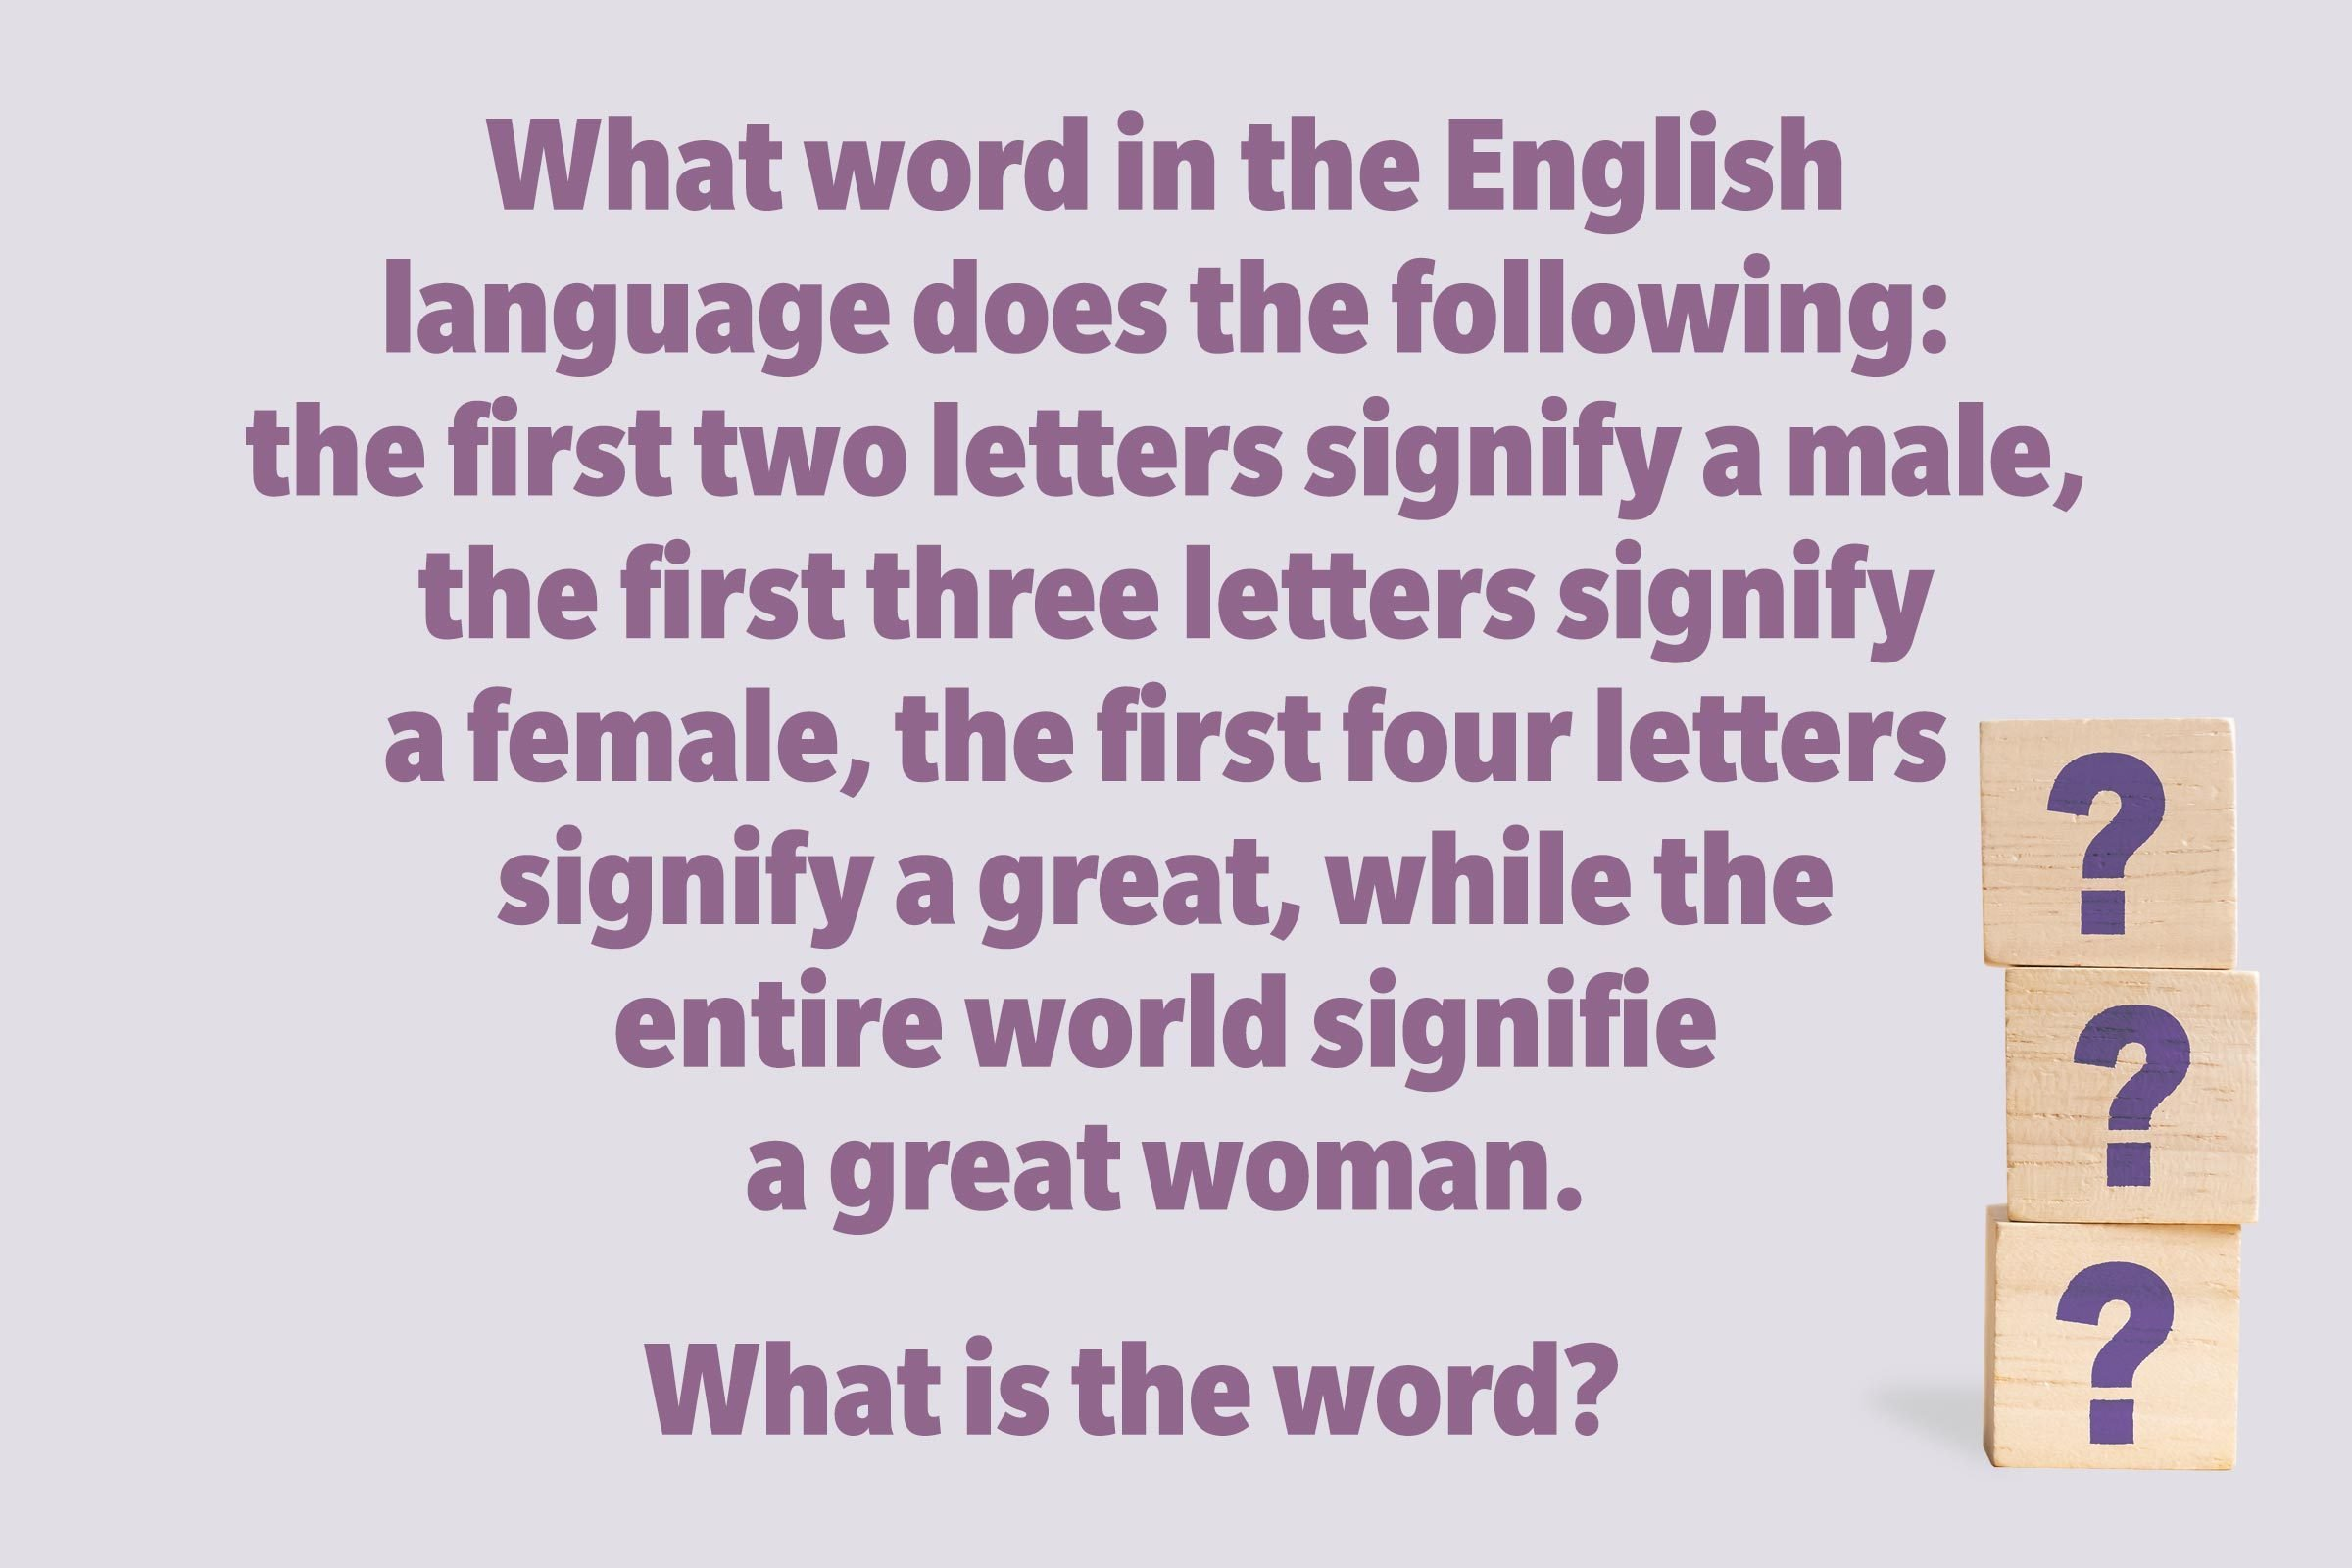 What word in the English language does the following: the first two letters signify a male, the first three letters signify a female, the first four letters signify a great, while the entire world signifies a great woman. What is the word?